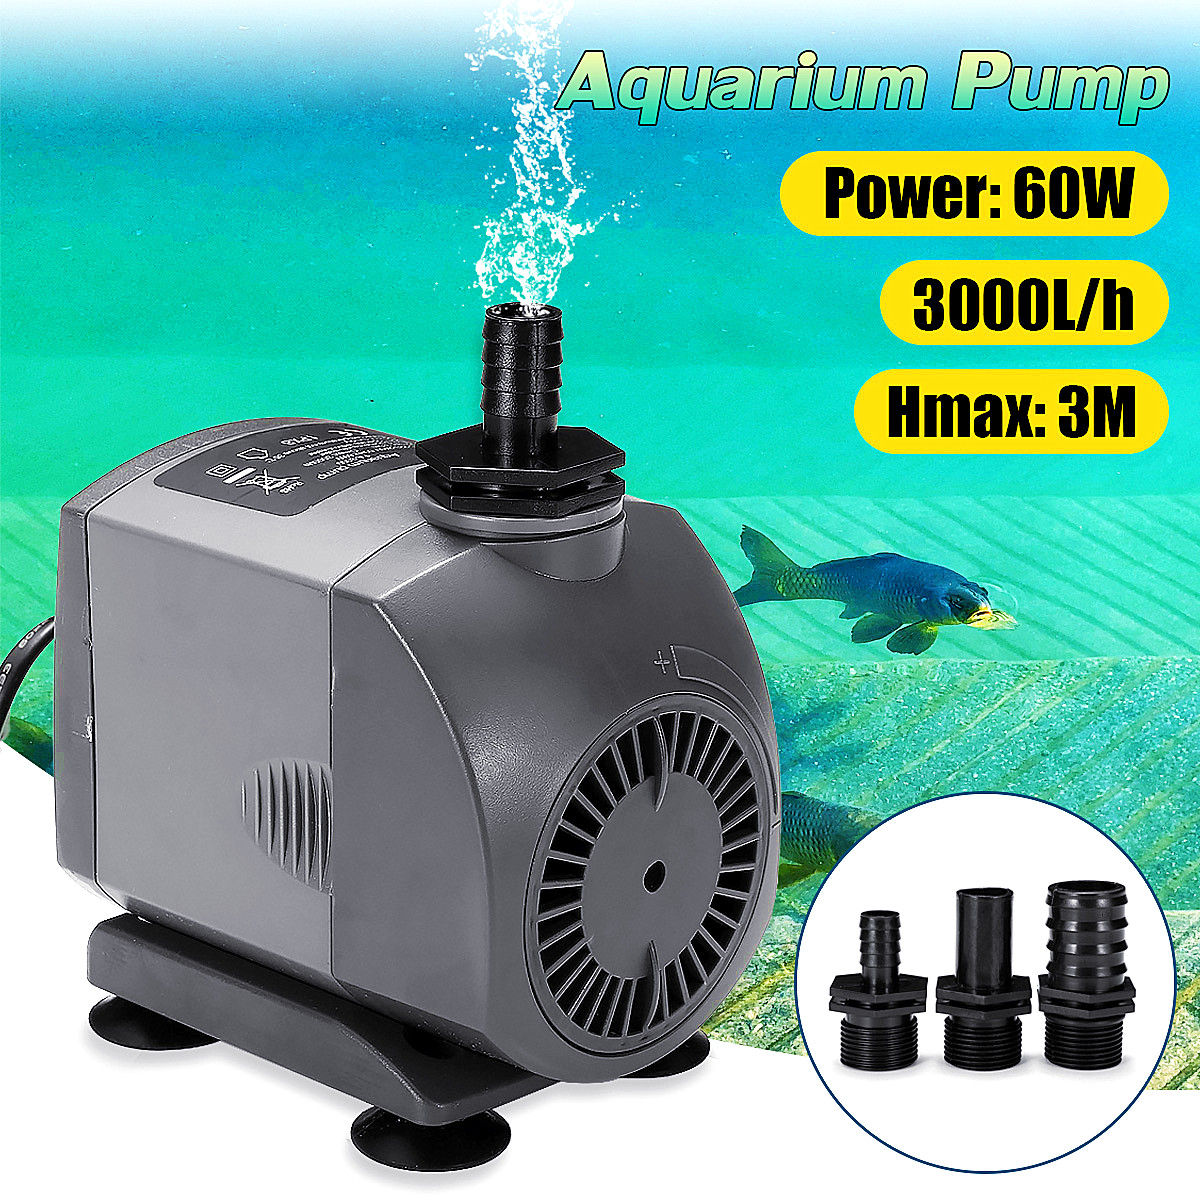 60W 220V 3000L/H Aquarium Garden Pump Submersible Water Fish Tank Fountain Filter Pond Marine Water Pump Quiet And Wearable clb 4500 high quality plastic filter pump fish pond circulating water pump 220v electric submersible pump